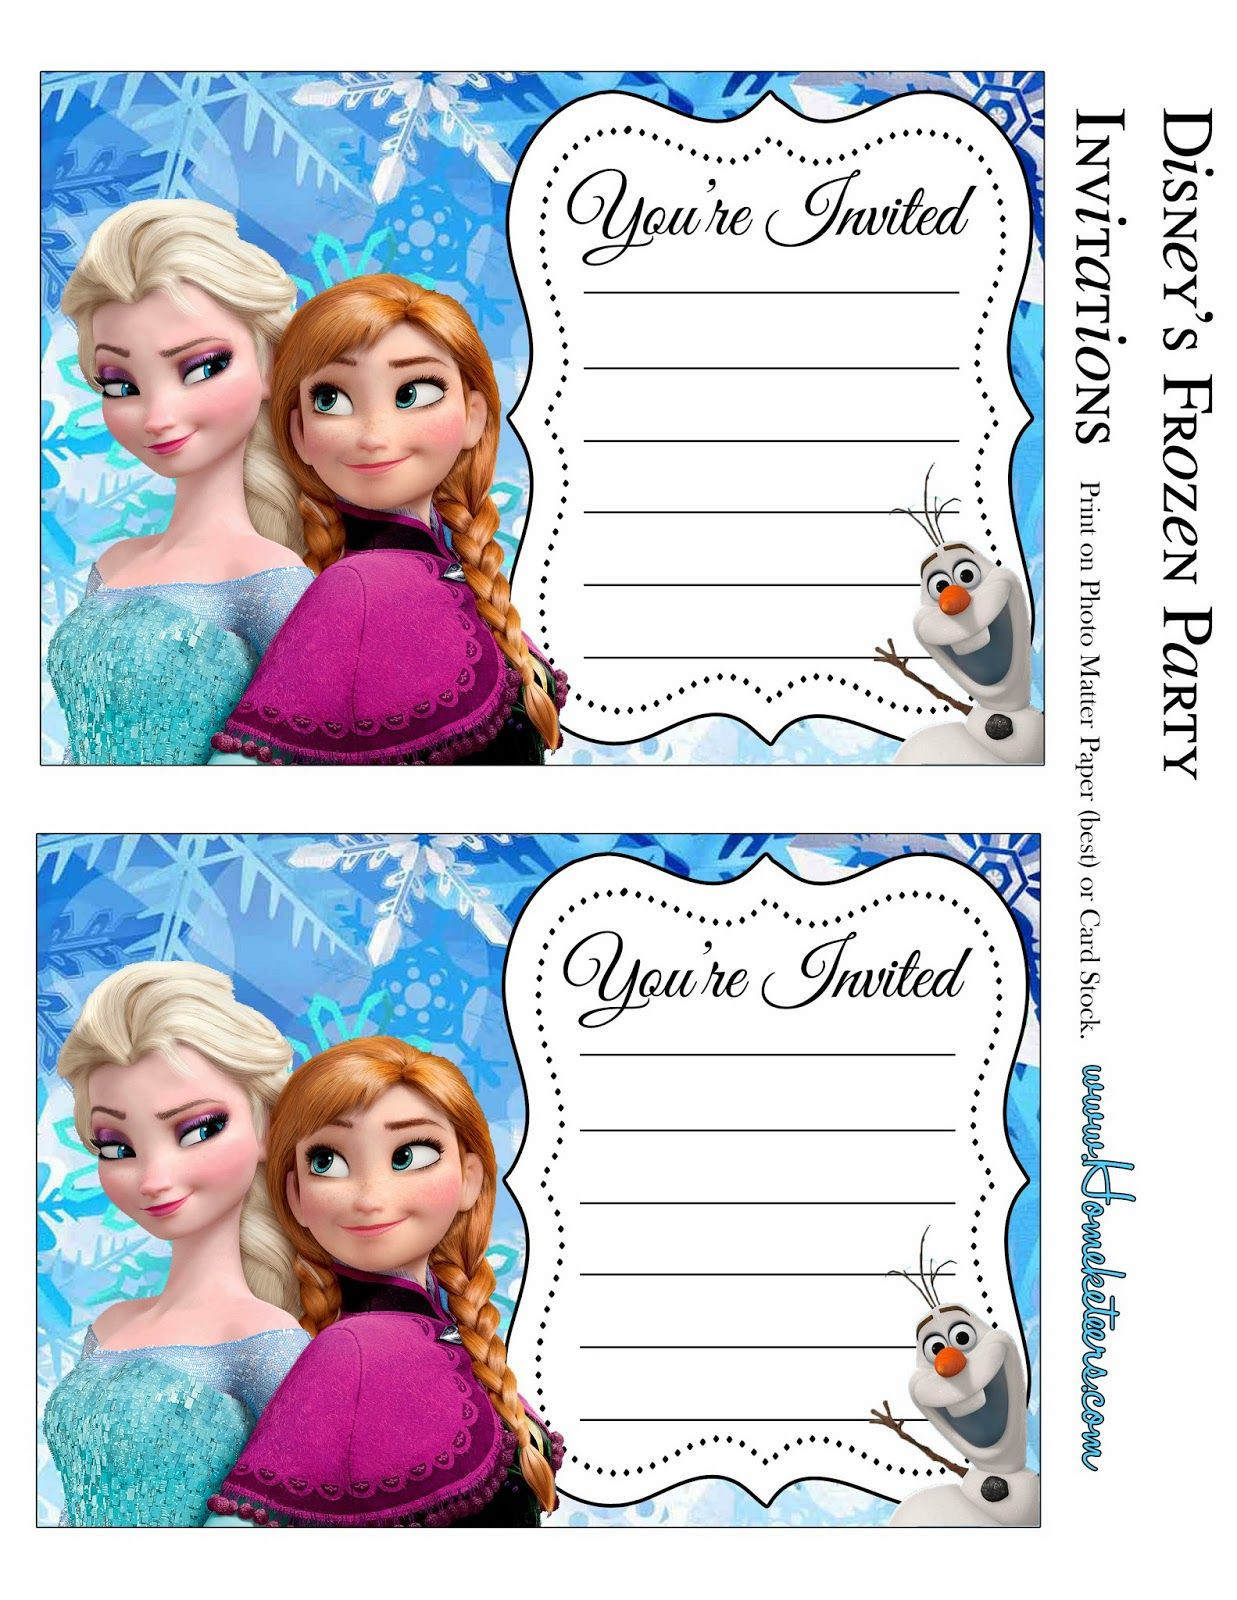 Frozen Invitations Printable Frozen Party Free Printable Invitations